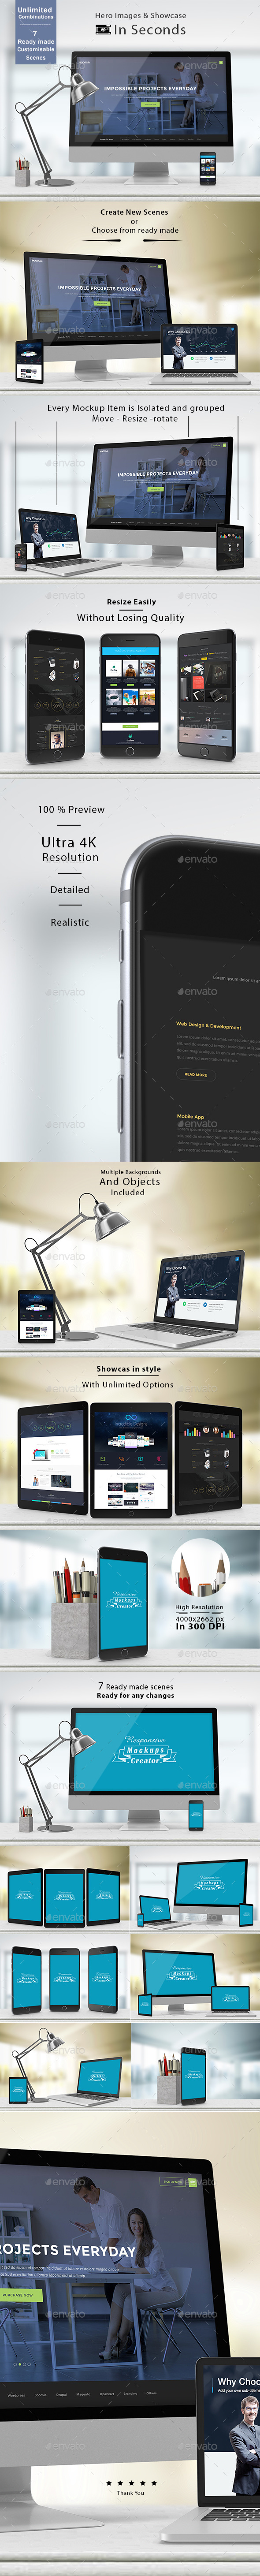 Responsive Mockups Creator V2 - Showcase & Hero Images - Latest News on Apple products Latest Release Apps and Games